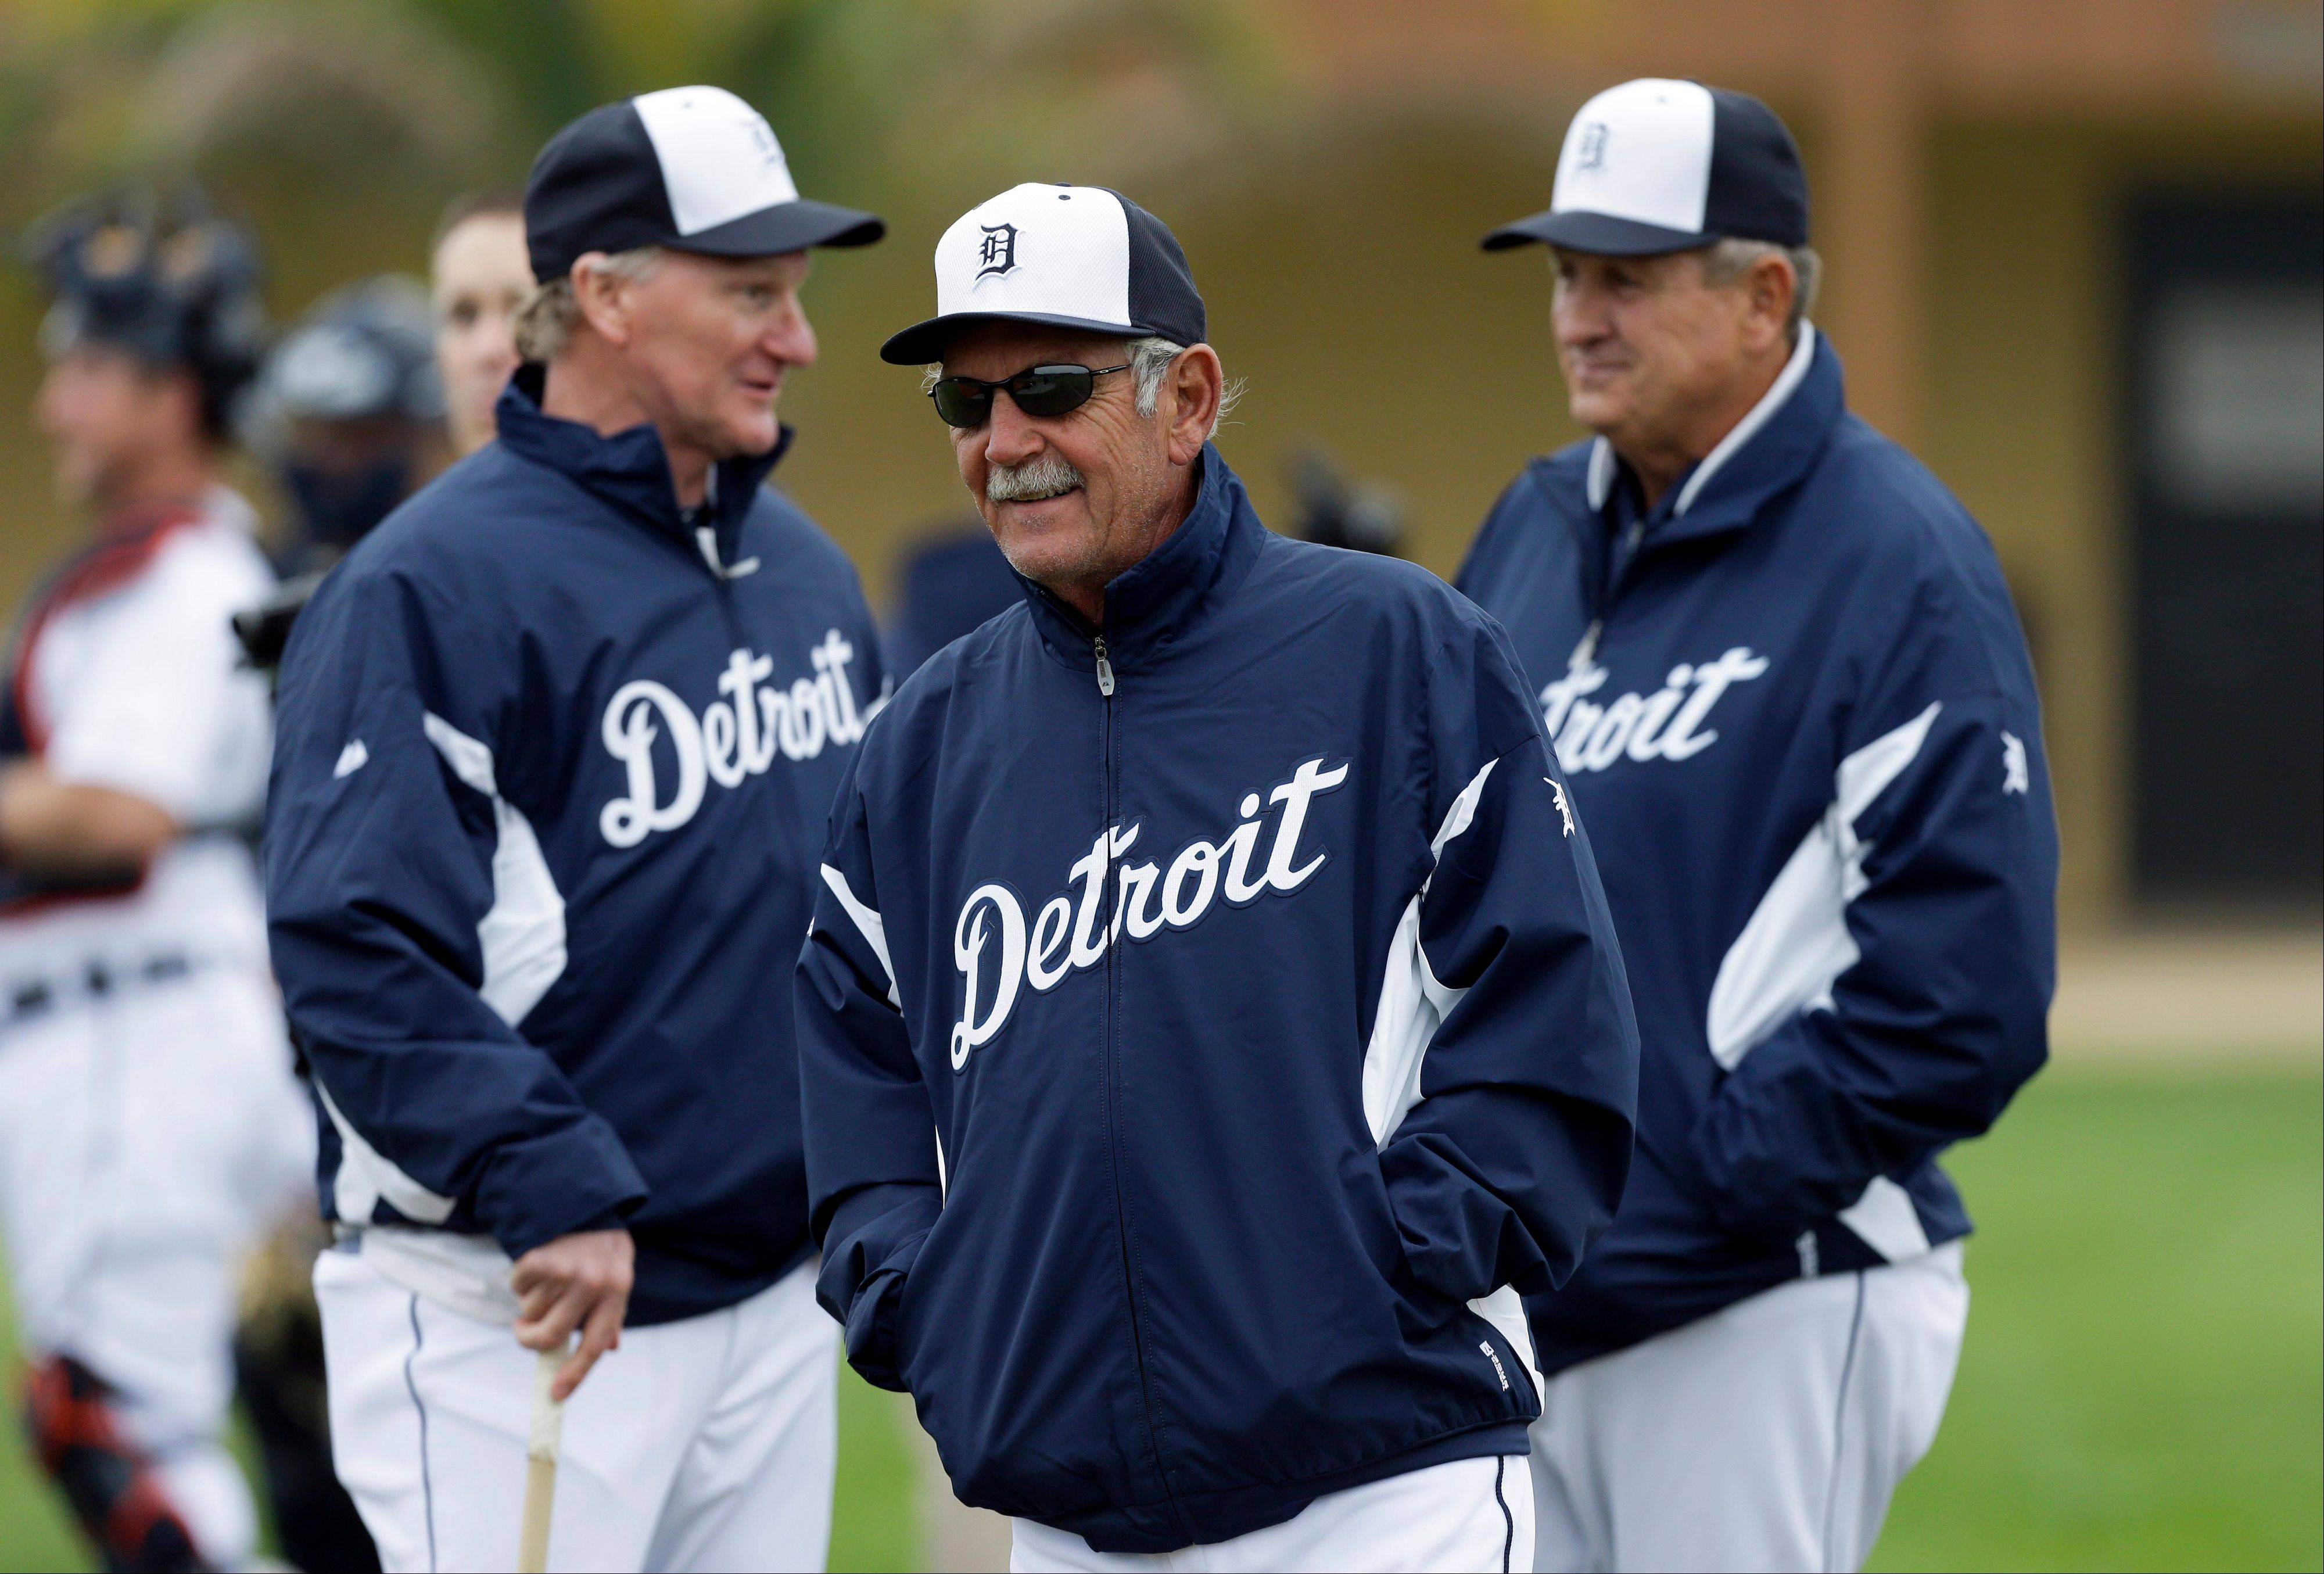 Associated PressEver the pessimist, Detroit manager Jim Leyland, center, likes his team but insists the Tigers can't take it easy with the improved talent on the Indians, White Sox and Royals.